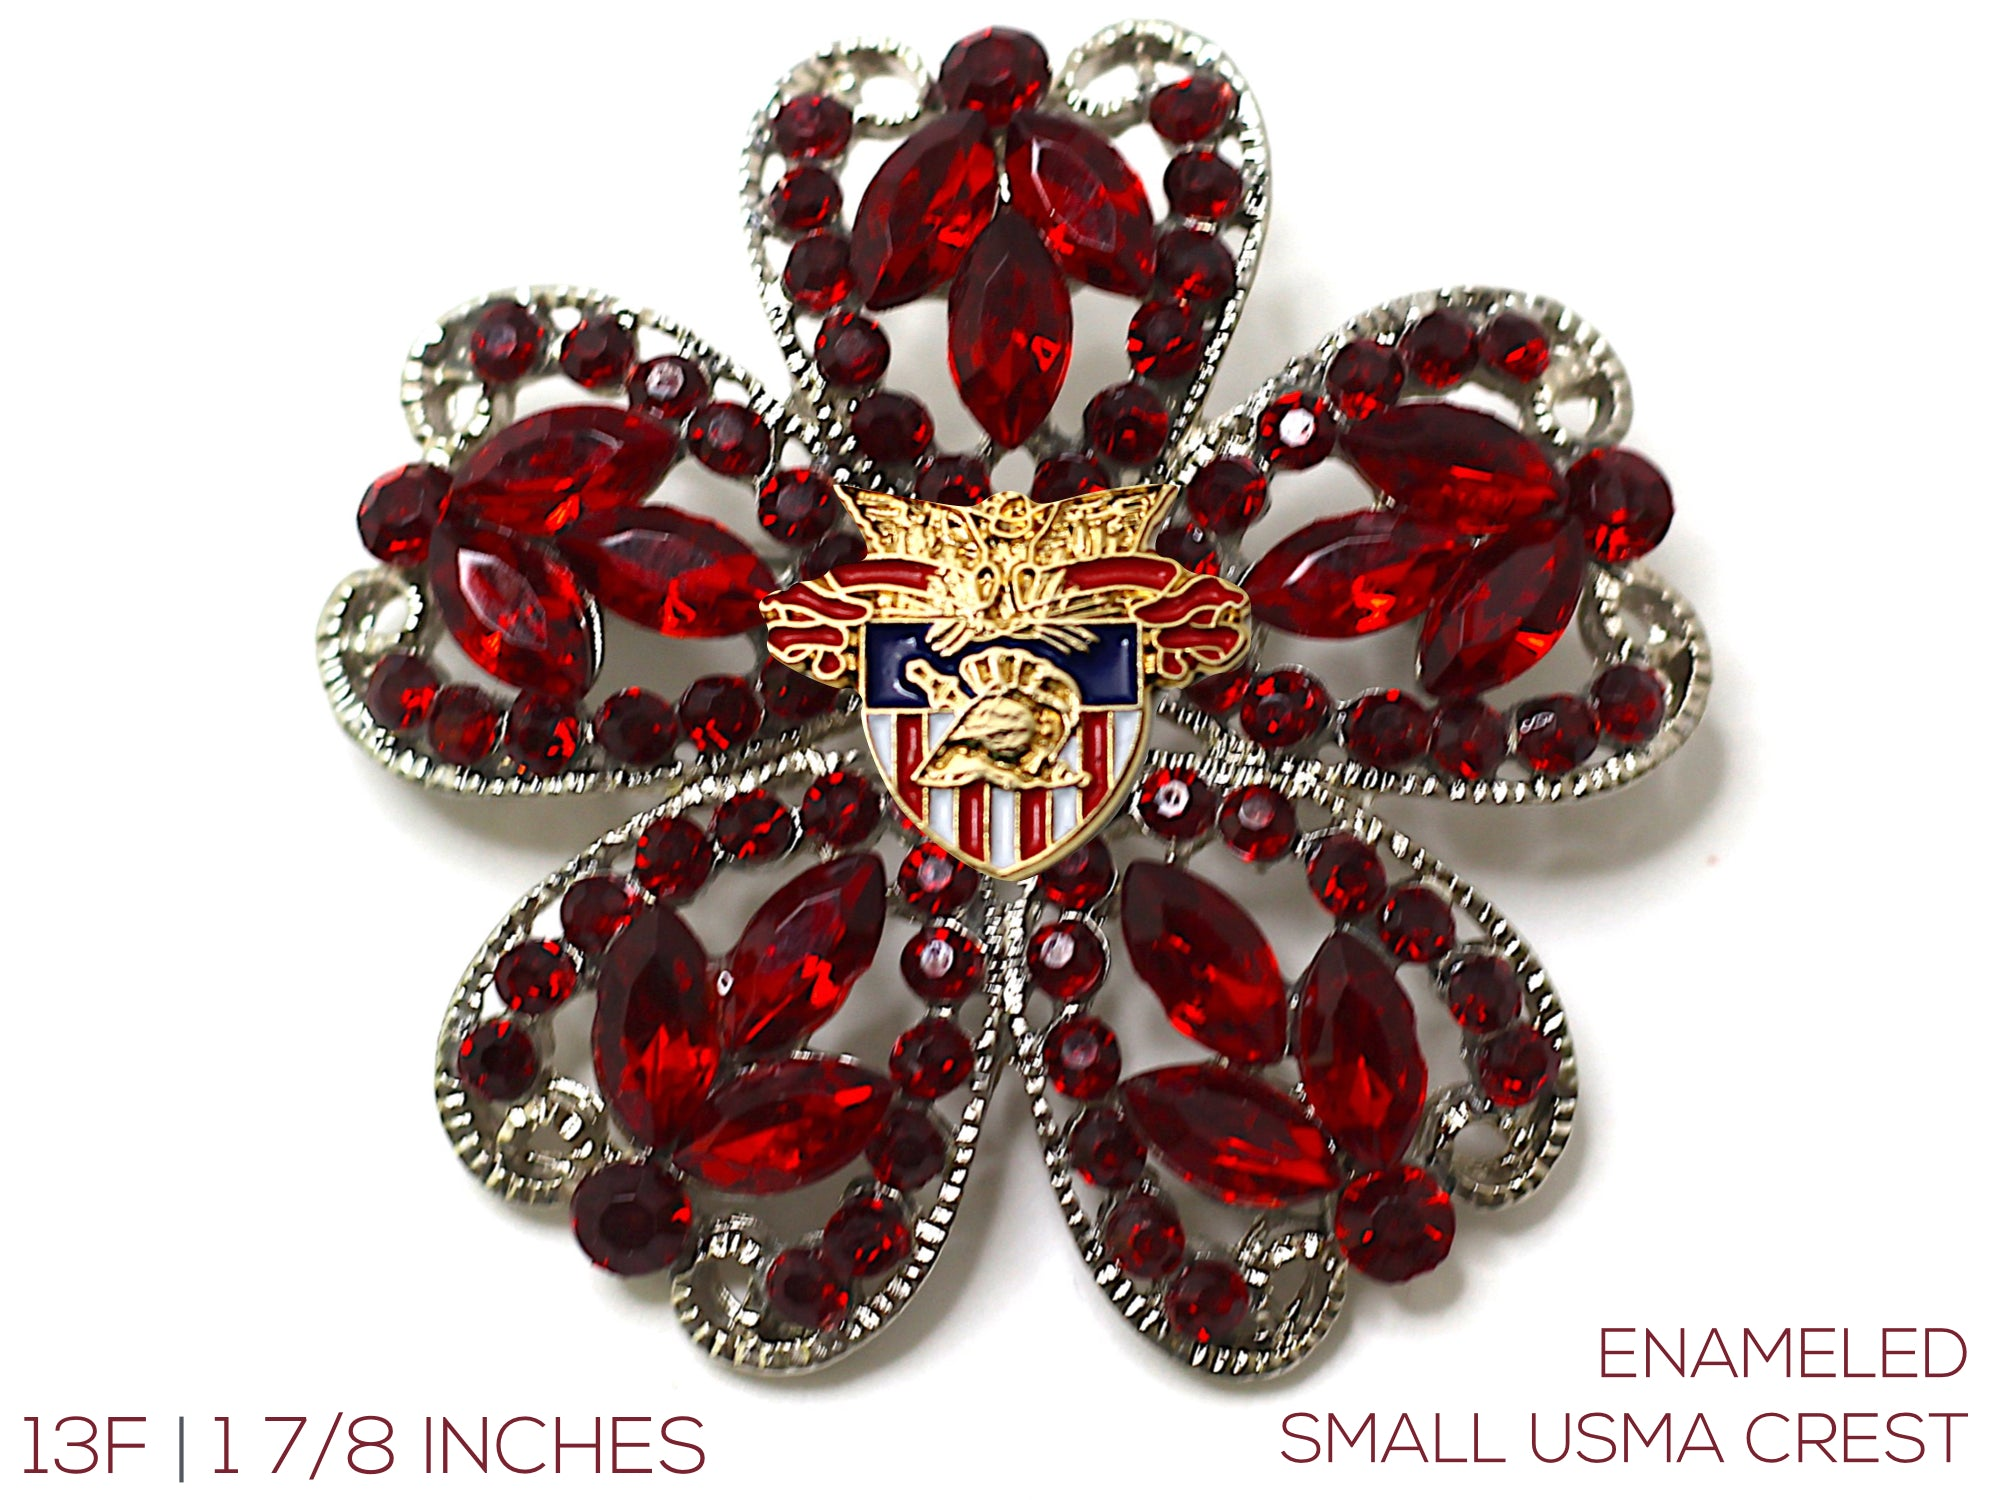 USMA Small Crest Brooch